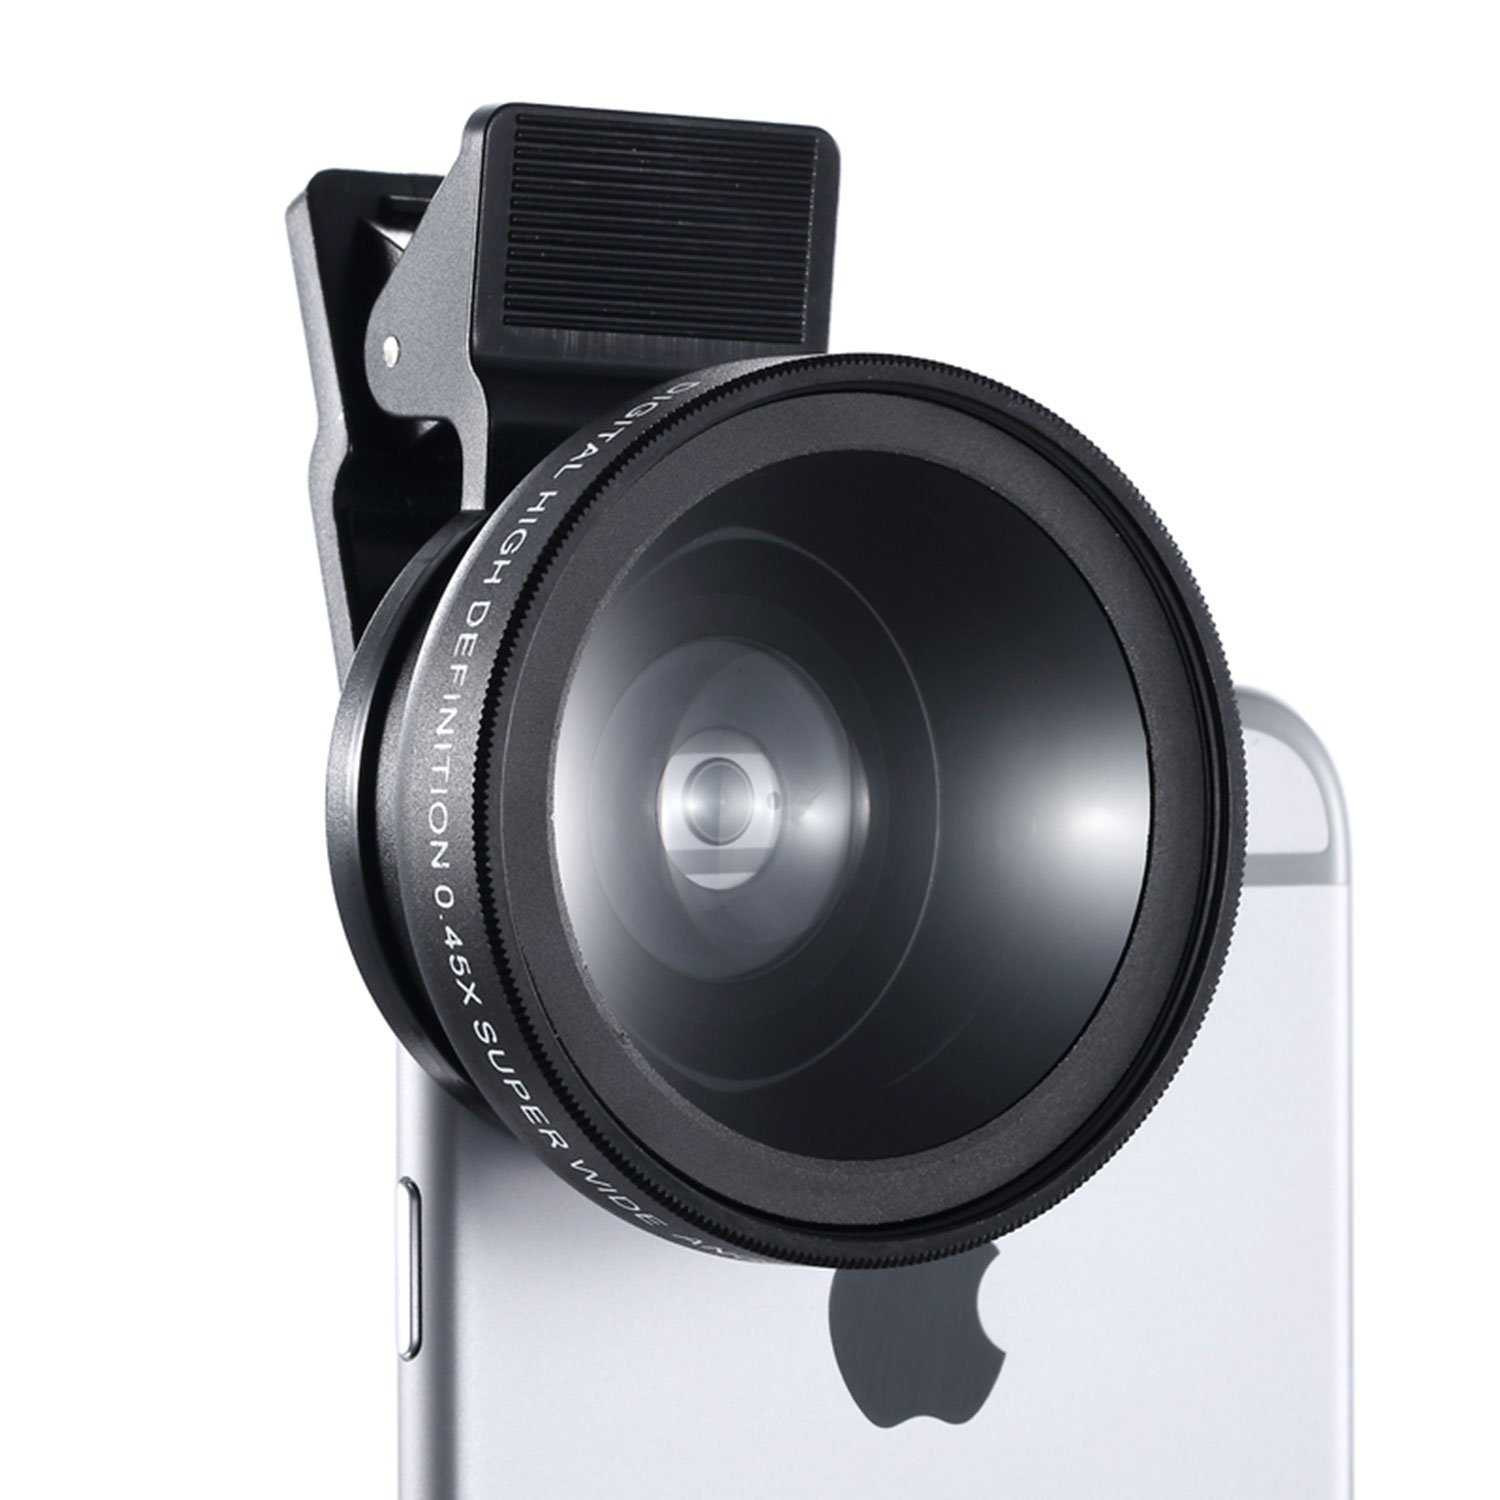 Cell Phone Camera Lens - HCE Universal Professional HD Camera Lens Kit 0.45x Super Wide Angle Lens & 12.5x Super Macro Lens for iPhone 7, 6s, 6, 5s & Most Smartphones